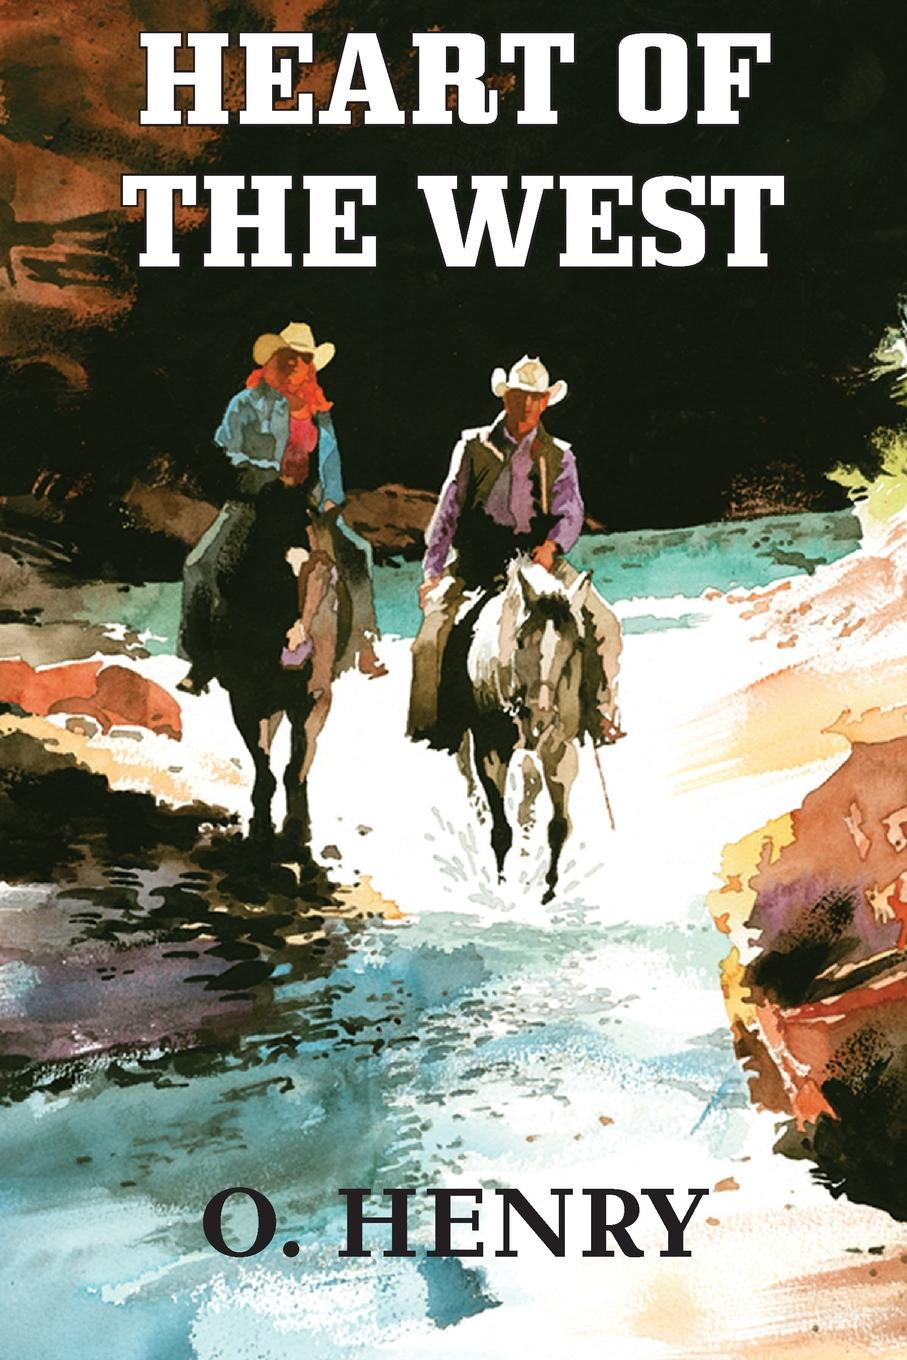 O. Henry Heart of the West henry o collected tales iii the sleuths witches loaves pride of the cities